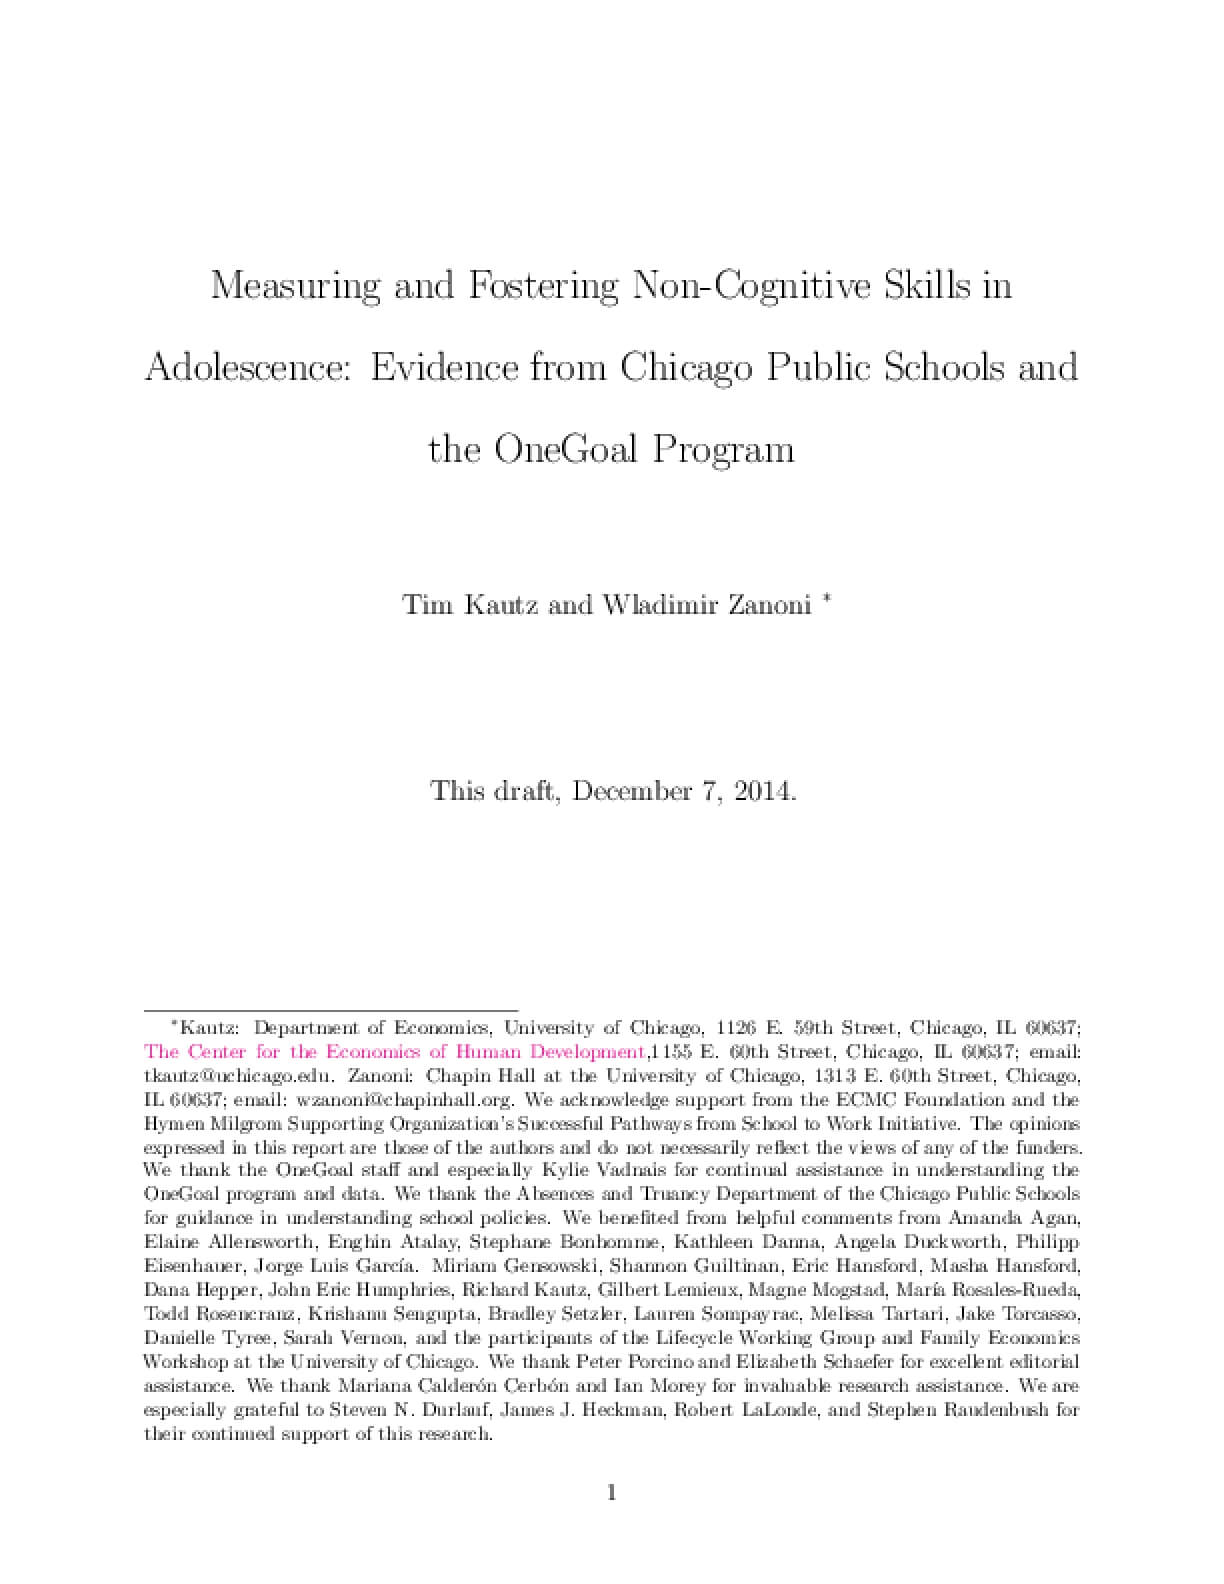 Measuring and Fostering Non-Cognitive Skills in Adolescence: Evidence from Chicago Public Schools and the OneGoal Program